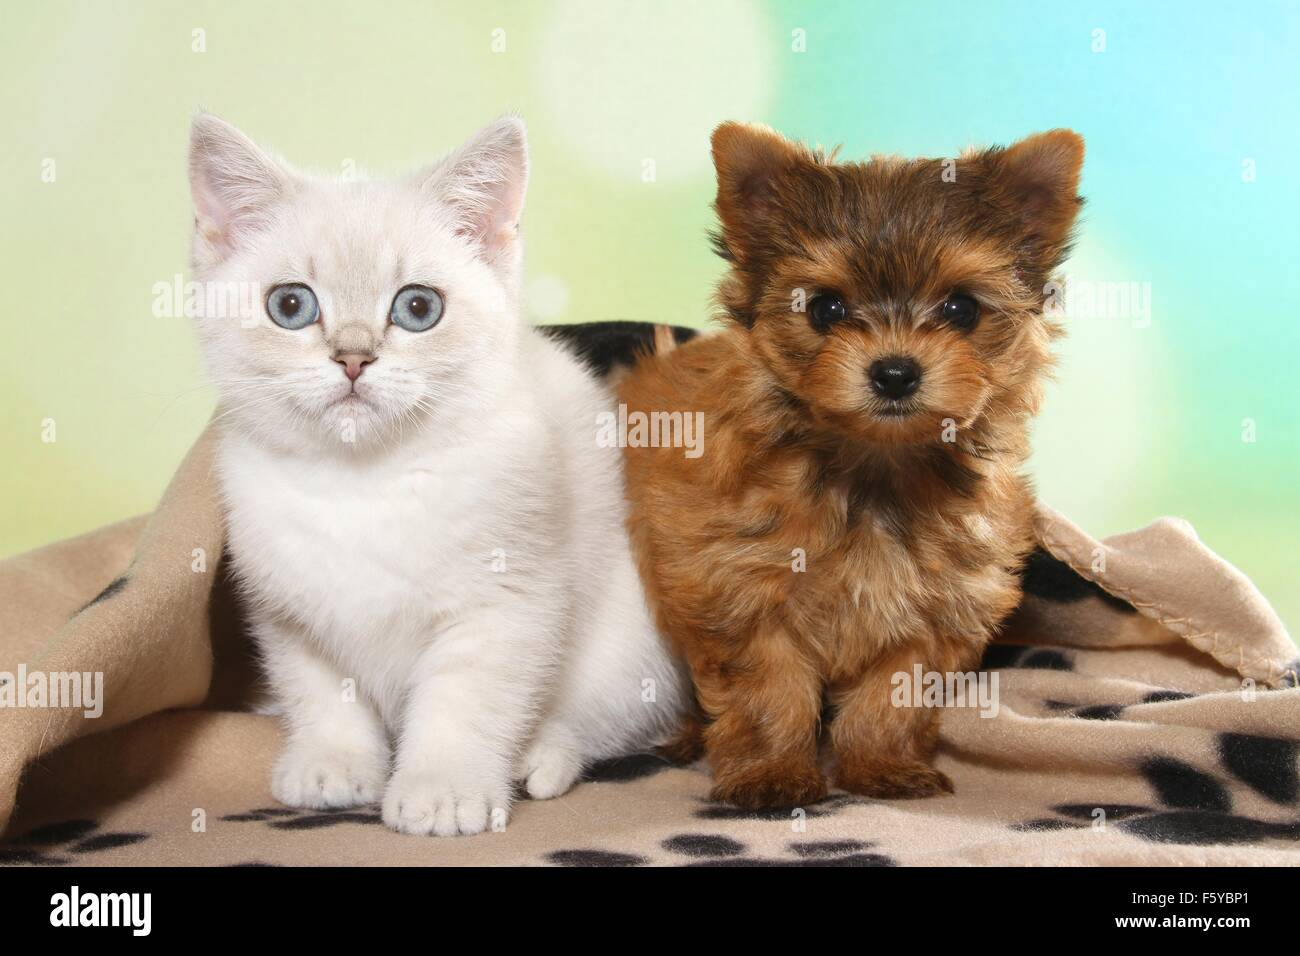 British Shorthair Kitten And Yorkshire Terrier Puppy Stock Photo